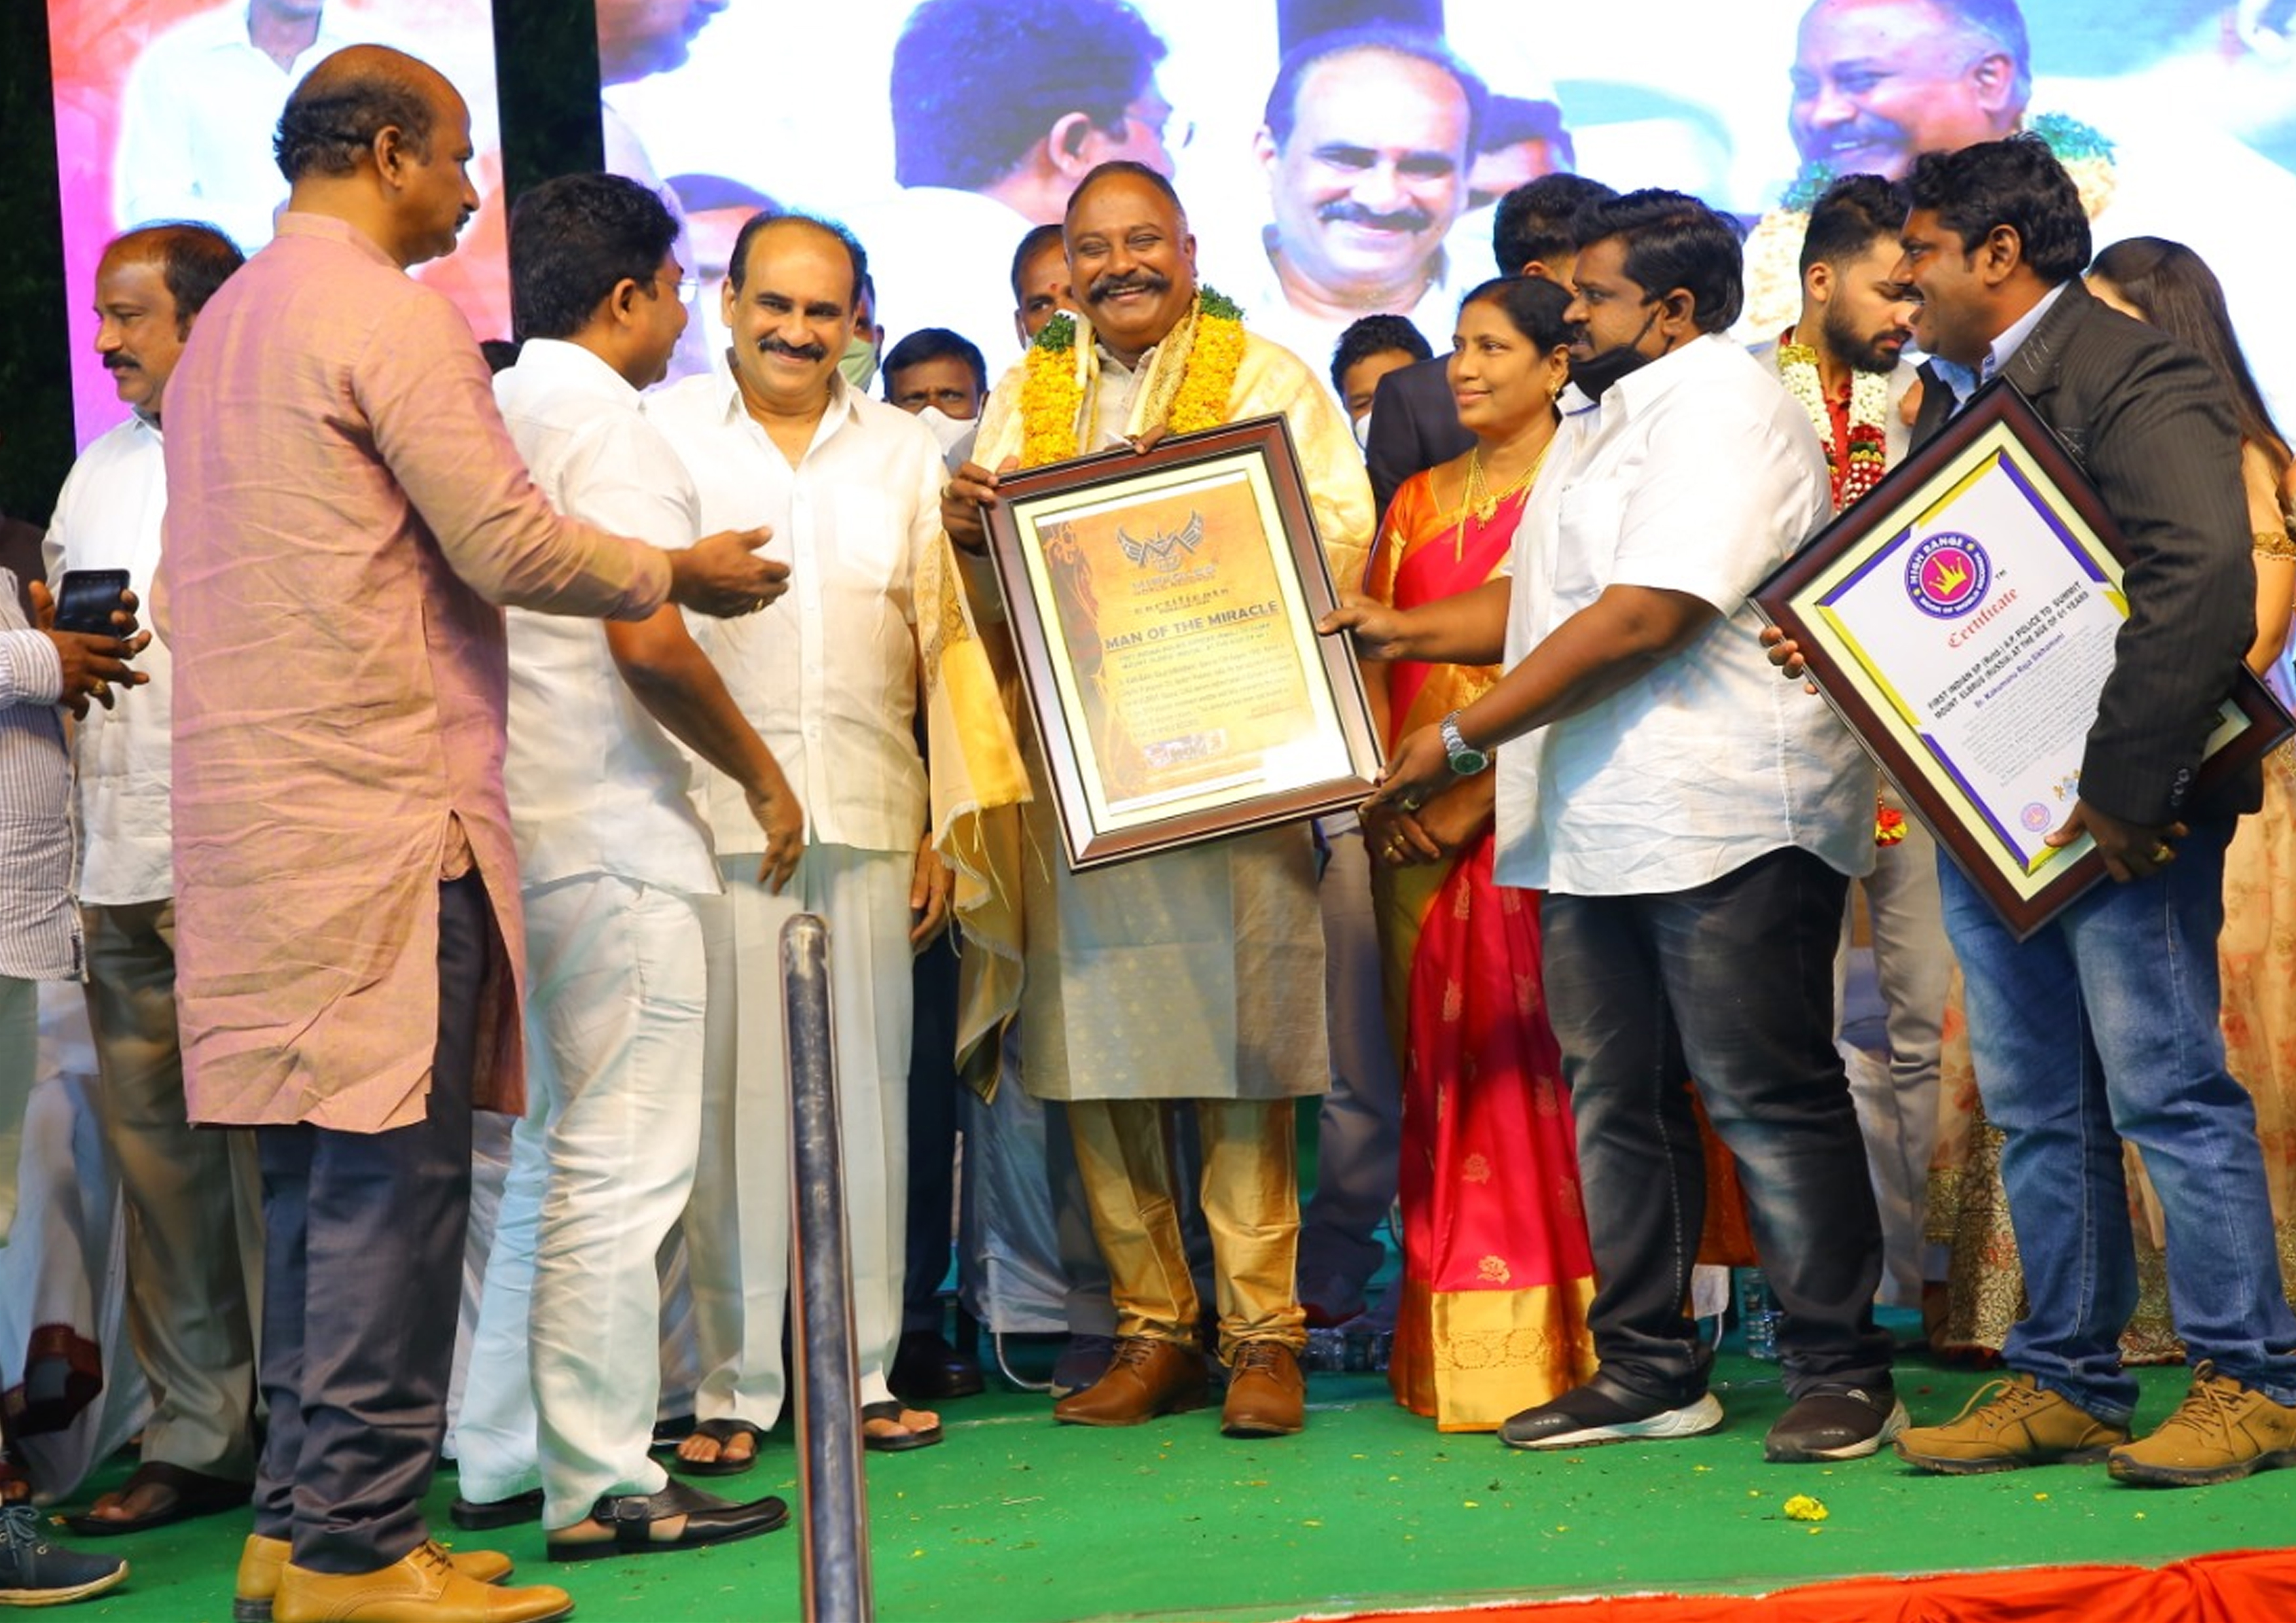 A.P Ministers BALINENI. SRINIVASA REDDY Gaaru & ADIMULAM. SURESH Gaaru, Santhanuthalapadu MLA T.J.R SUDHAKAR Gaaru & ( THIMMIRI RAVEENDRA , T.BHANUCHANDAR as a miracles india jury team) Presented MIRACLES WORLD RECORDS Gold medal , Certificate to KAKUMANU RAJASIKHAMNI Gaaru for CLIMB MOUNT ELBRUS (RUSSIA) AT THE AGE OF 60'S, , FIRST INDIAN POLICE OFFICER (Retd.)